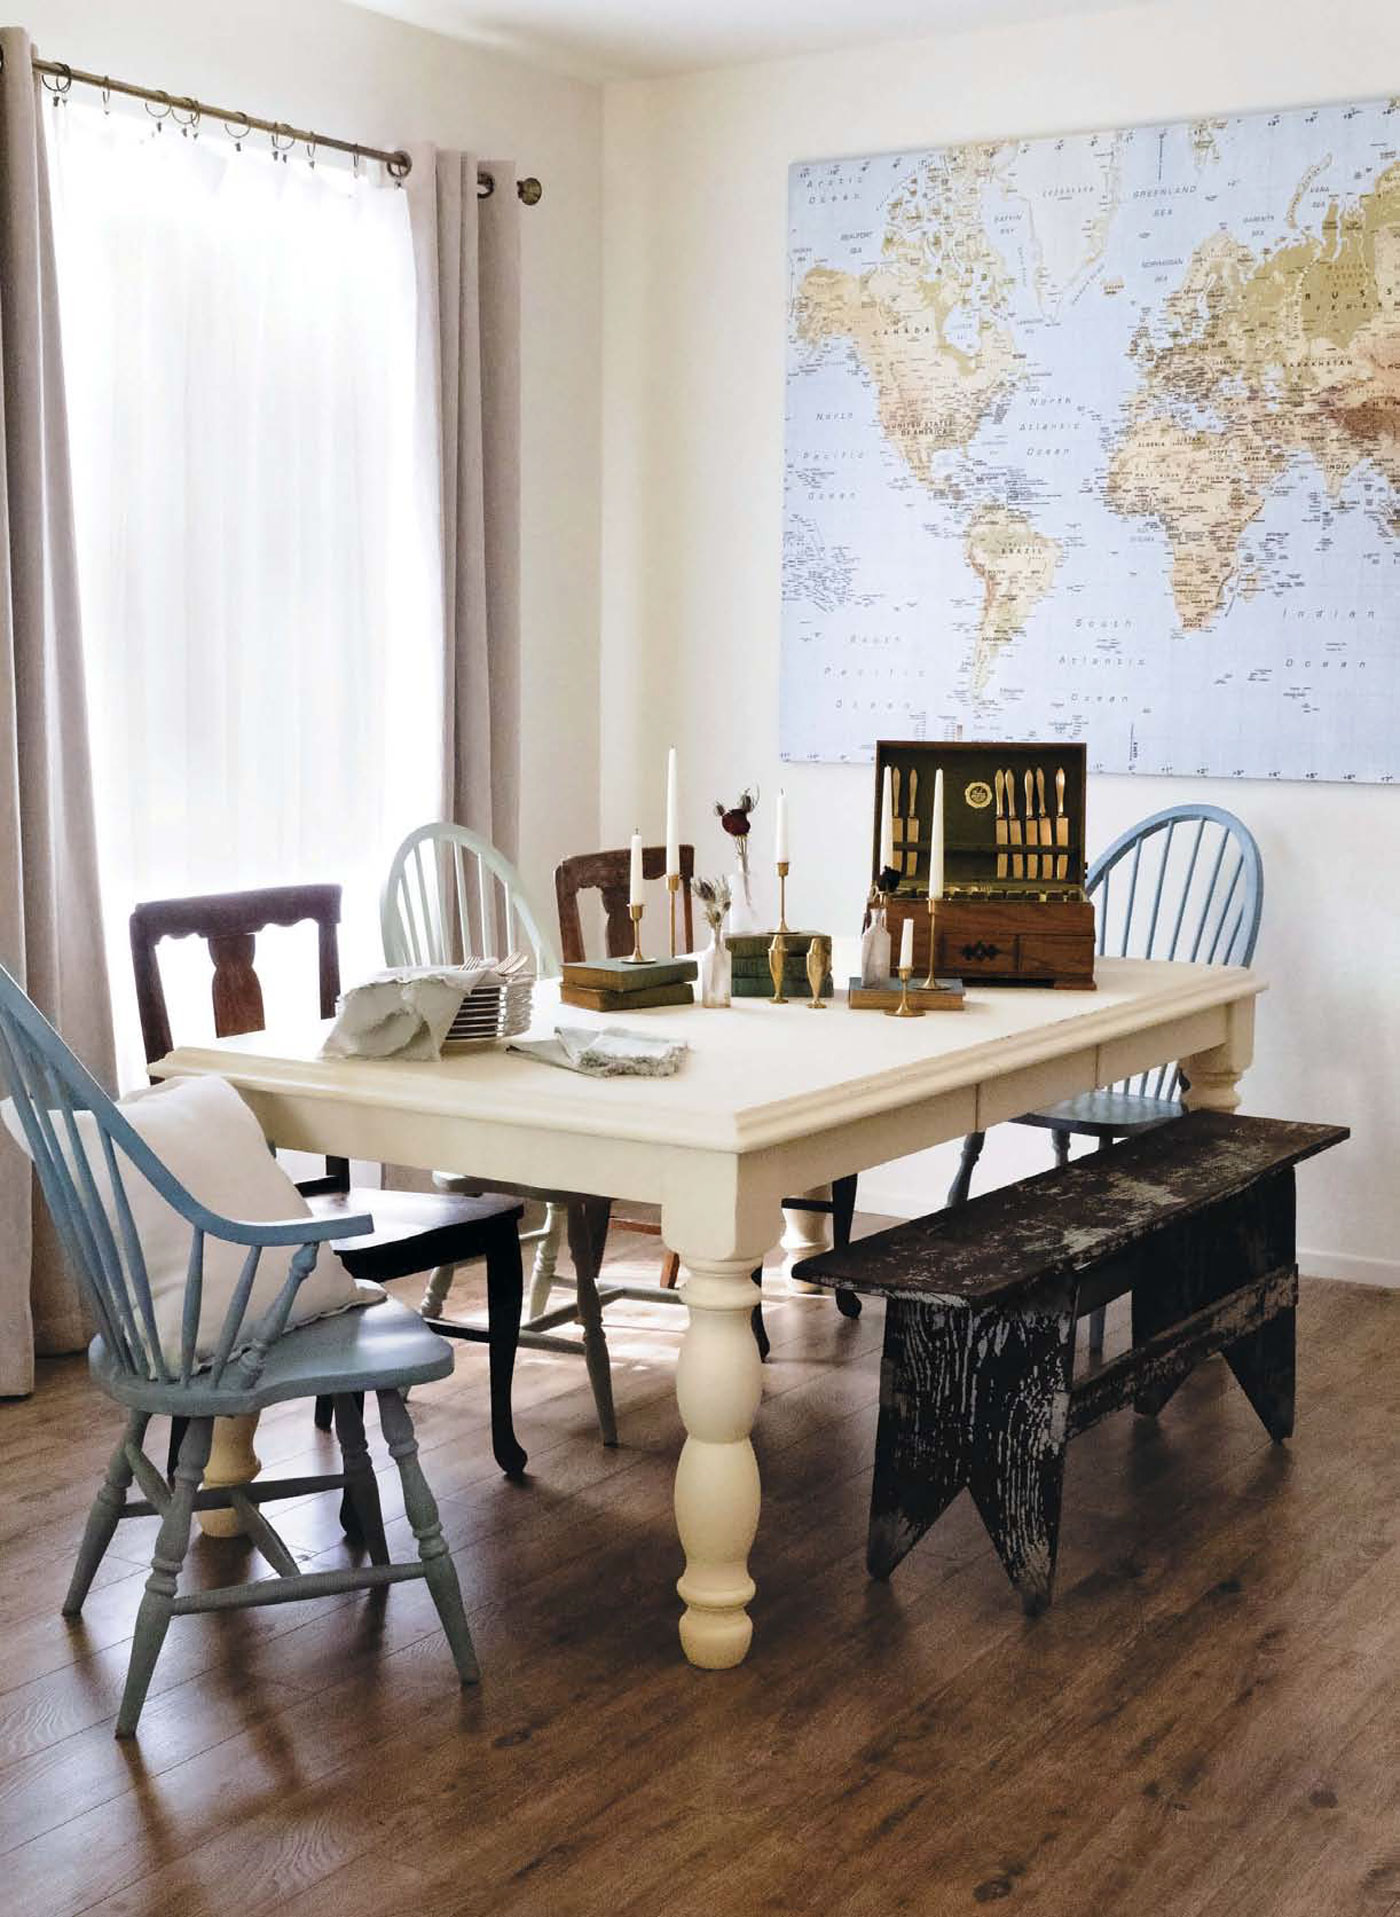 Dining Table Refresh Flea Market Finds Home And Garden Decorating Ideas By Expert Interior Decorators